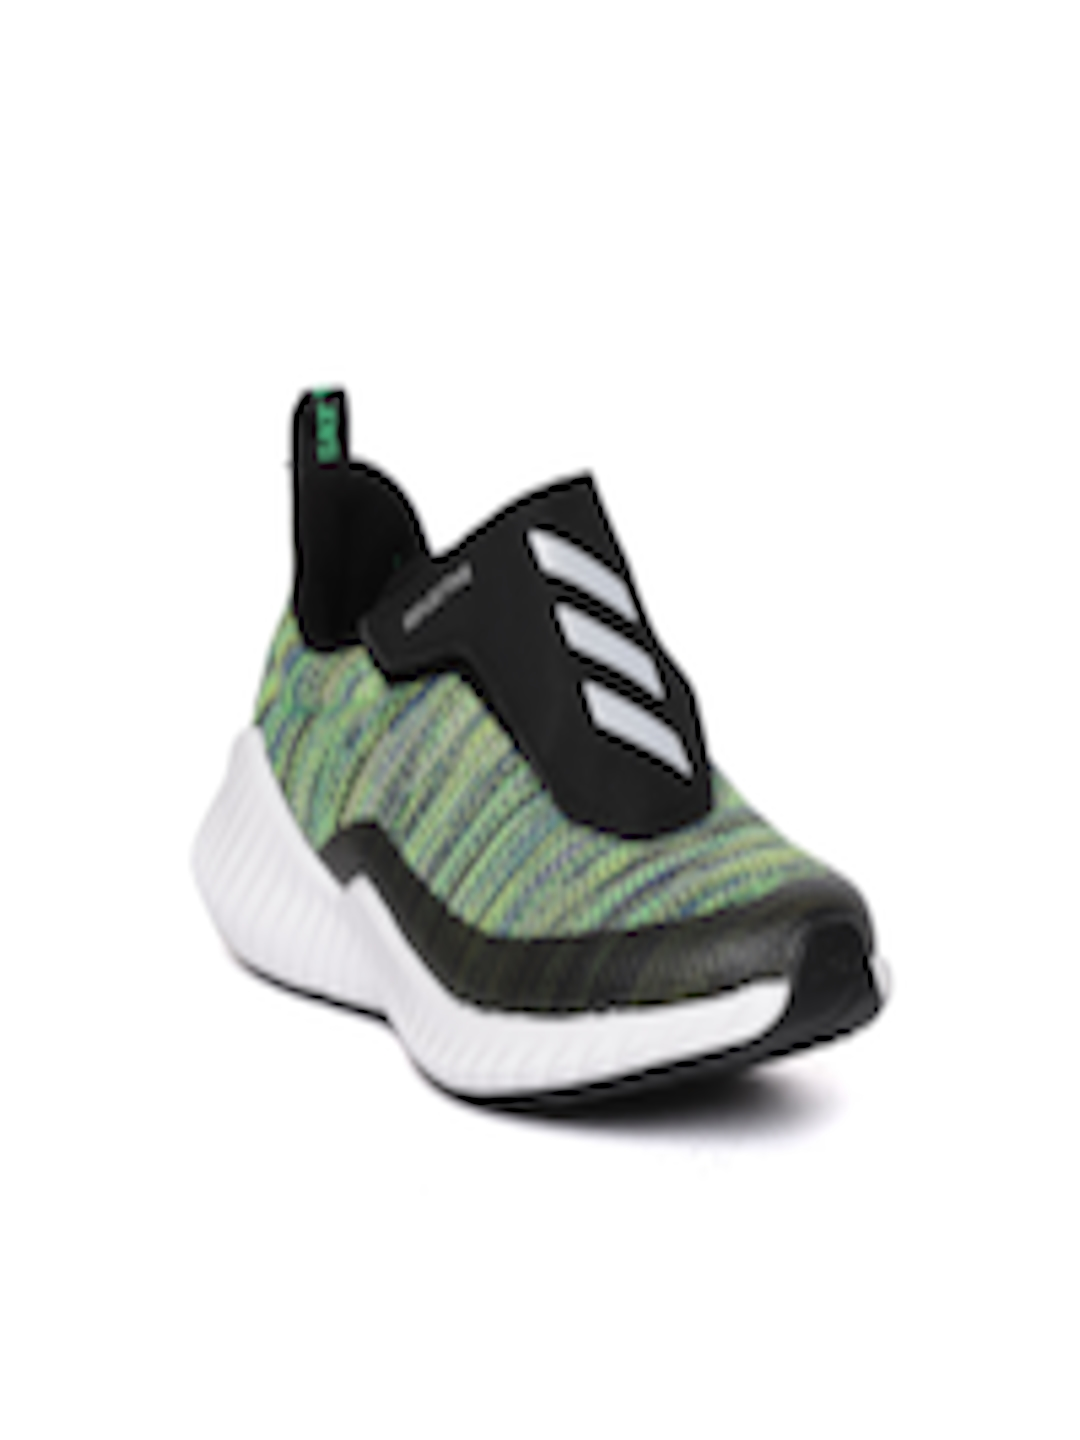 2d96bcd7a6c Buy ADIDAS Kids Green FORTARUN BTW AC Running Shoes - Sports Shoes for  Unisex 6841892